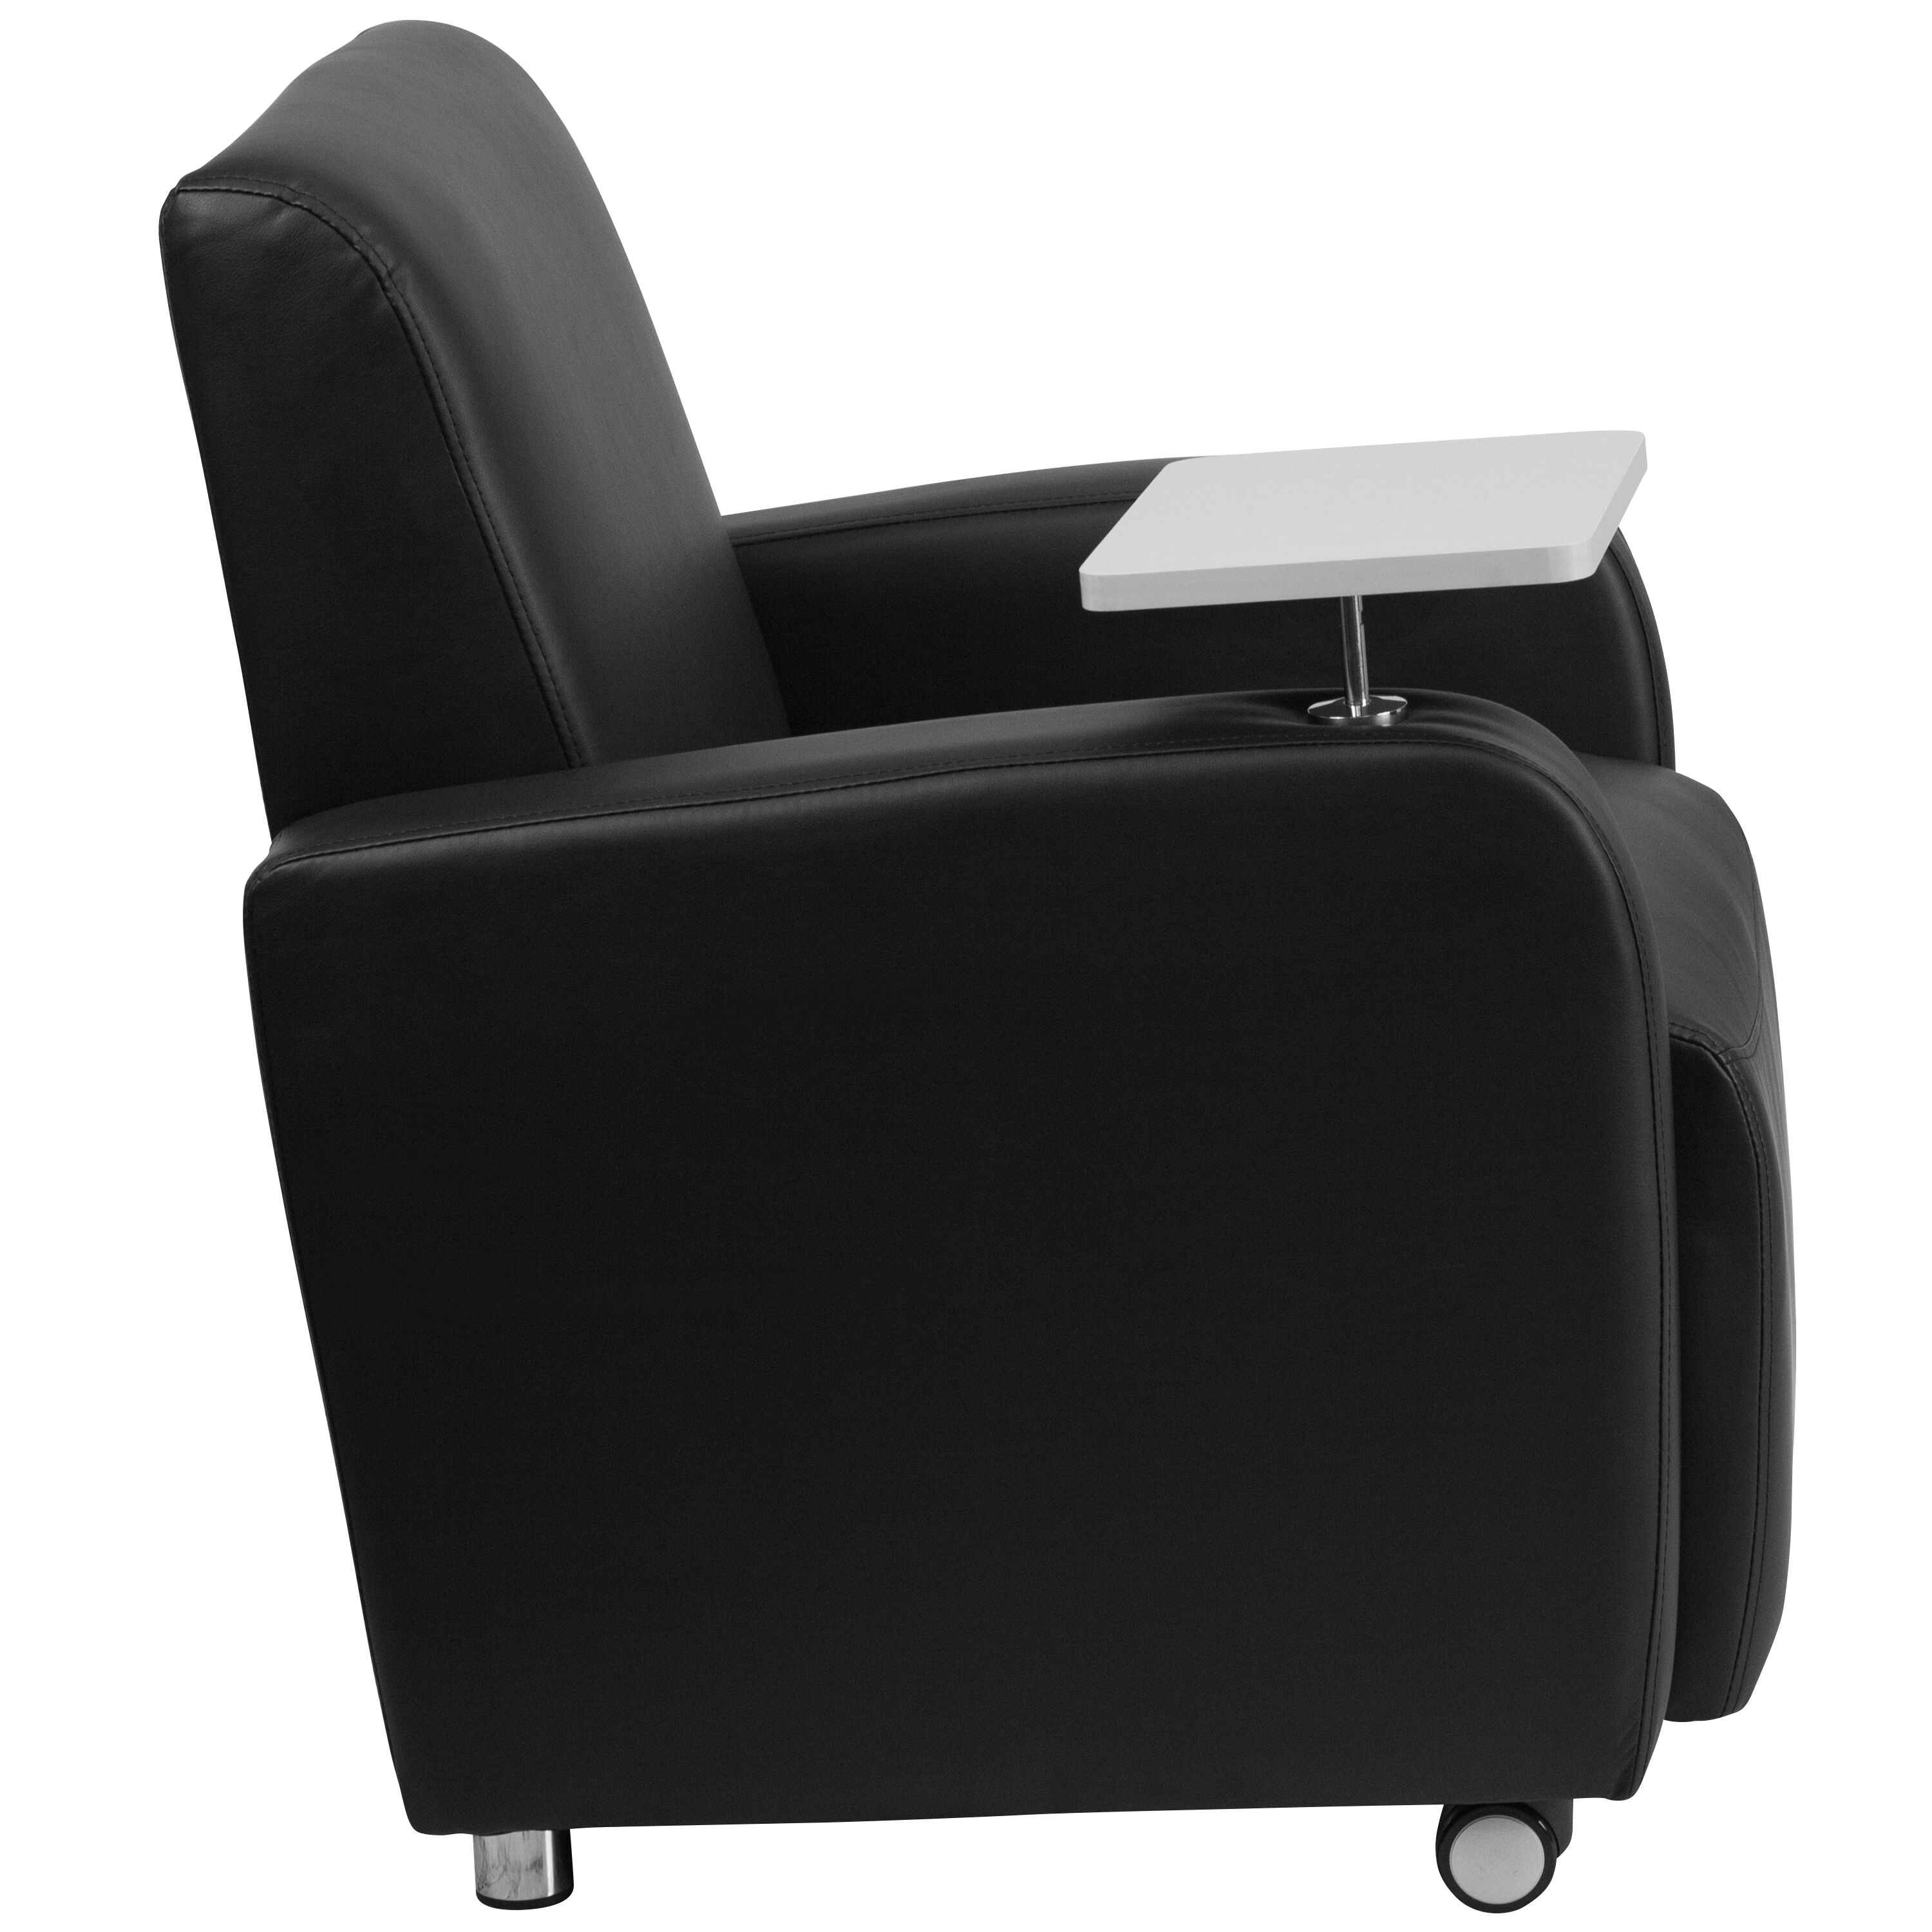 Beau ... Our Black Leather Guest Chair With Tablet Arm, Front Wheel Casters And  Cup Holder Is ...